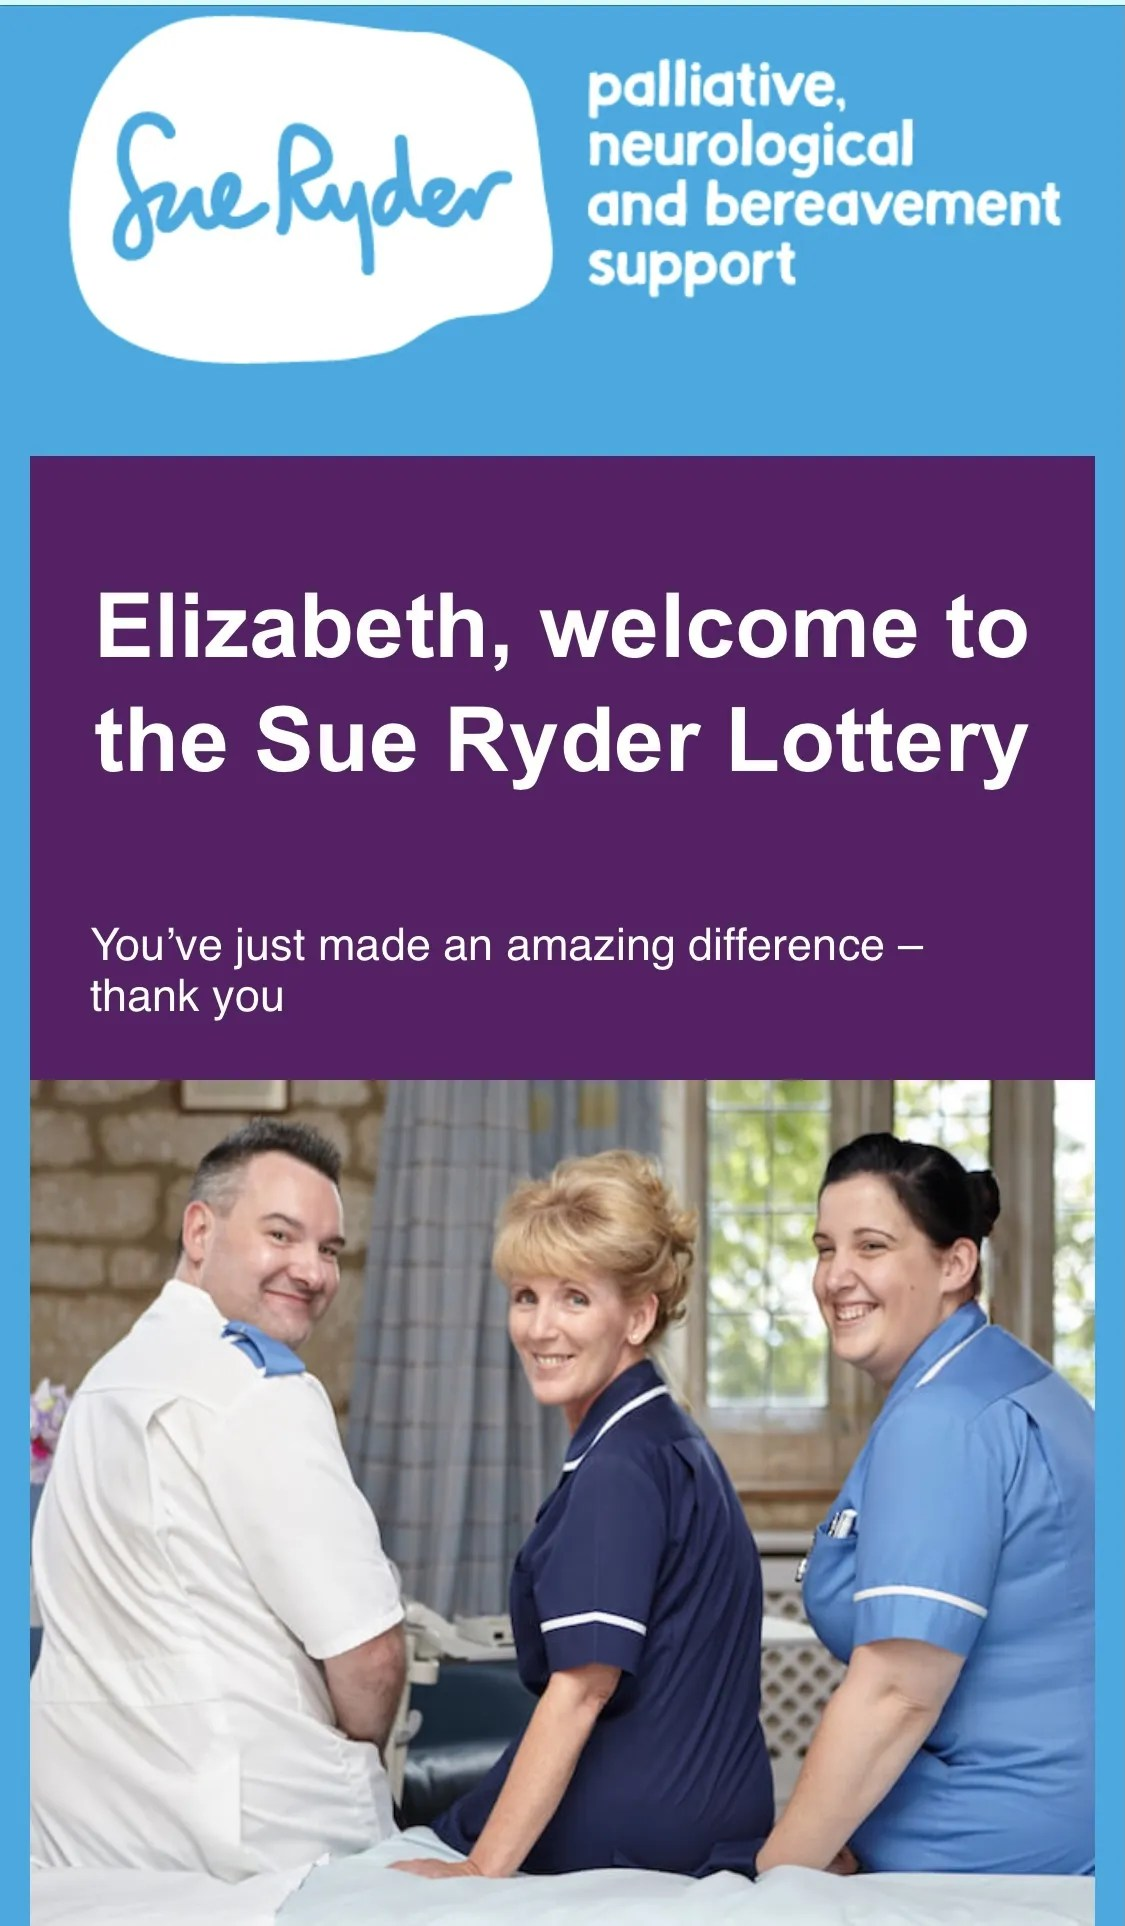 sue ryder charity lottery